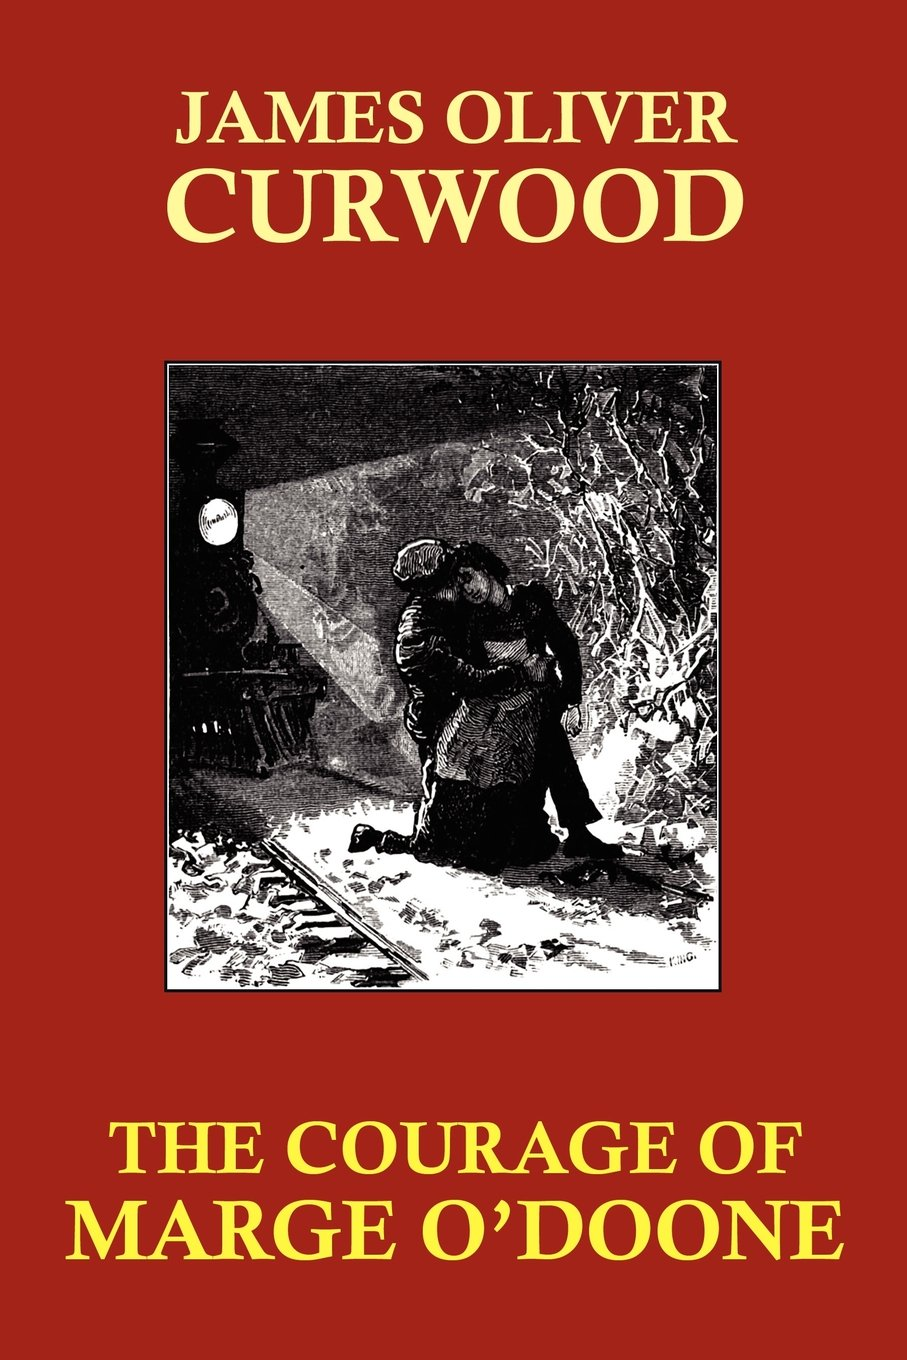 The Courage of Marge O'Doone PDF